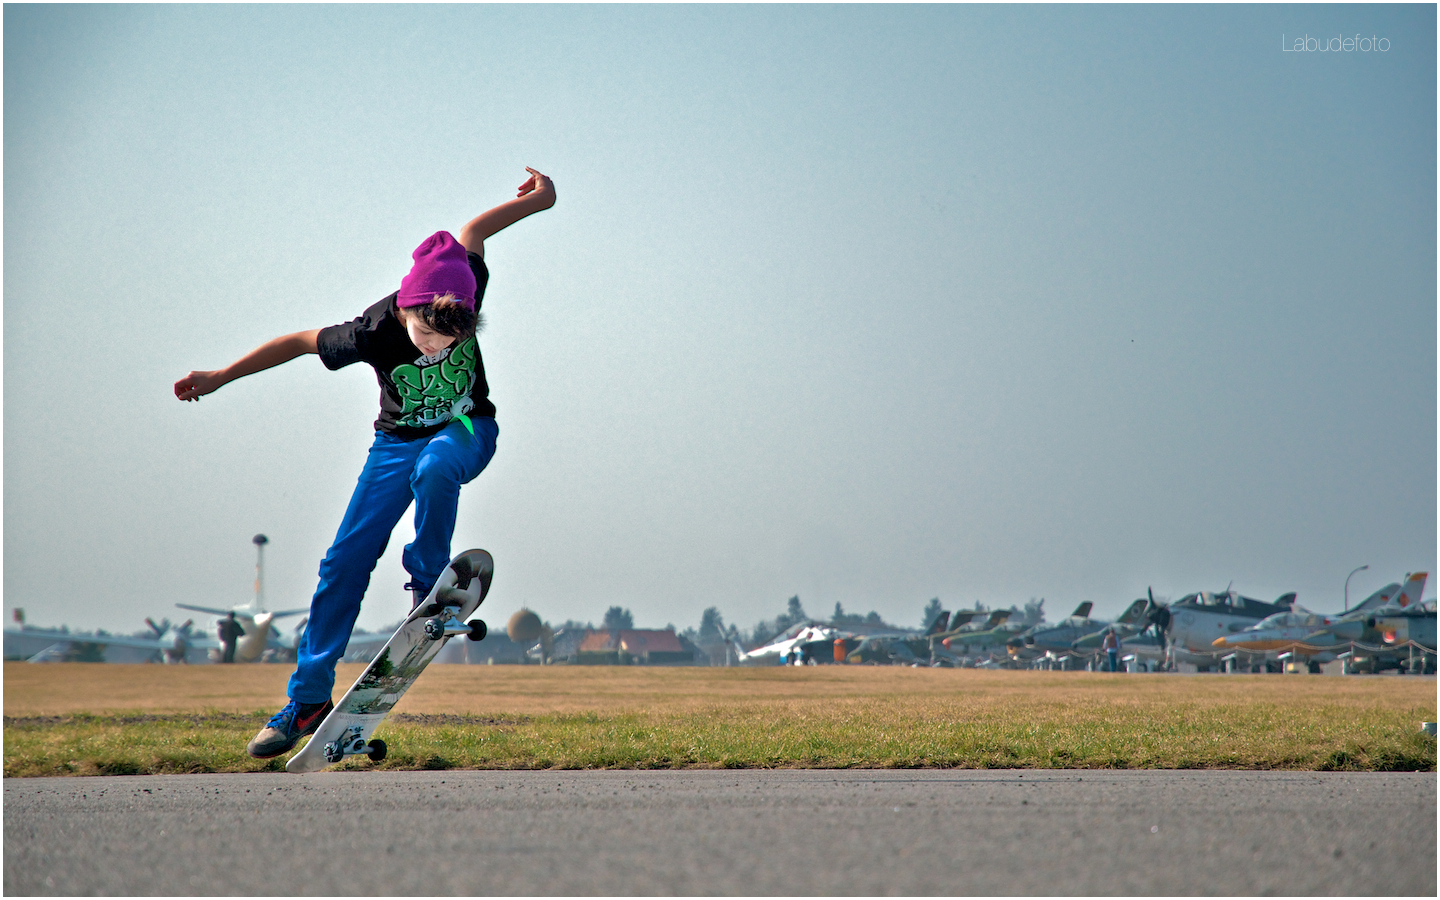 Gatow Airfield. Skate more.